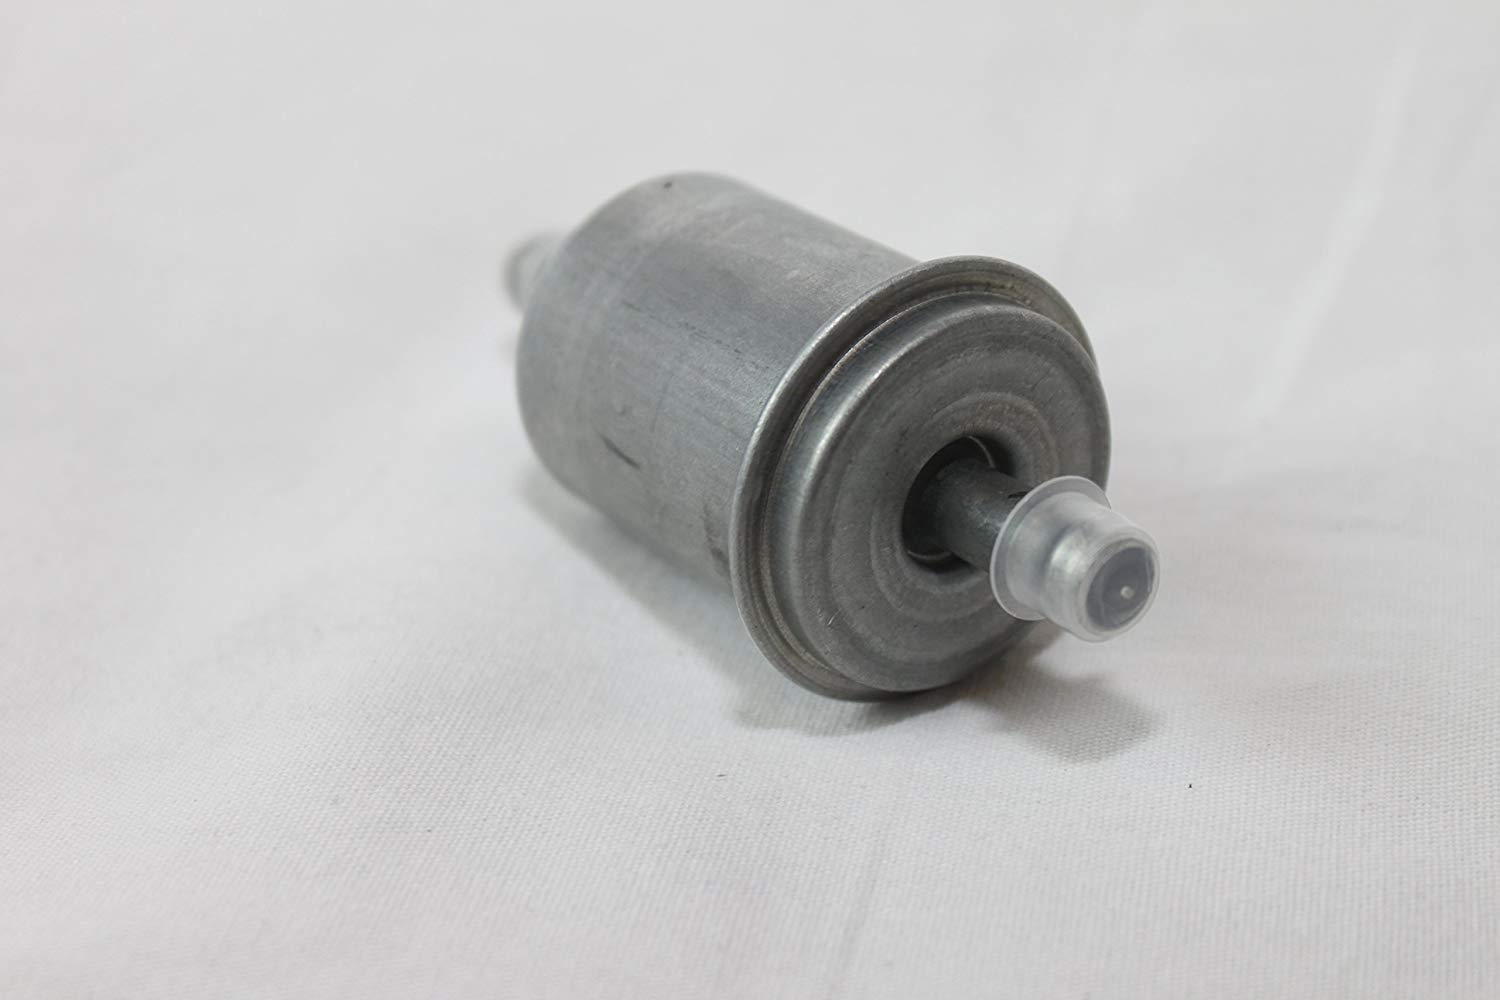 [SCHEMATICS_44OR]  FUEL FILTER COMP., CFMoto OEM - 6090-120220 - CFMoto USA Parts - Operated  by Curren RV | Cf Fuel Filter |  | CFMoto USA Parts